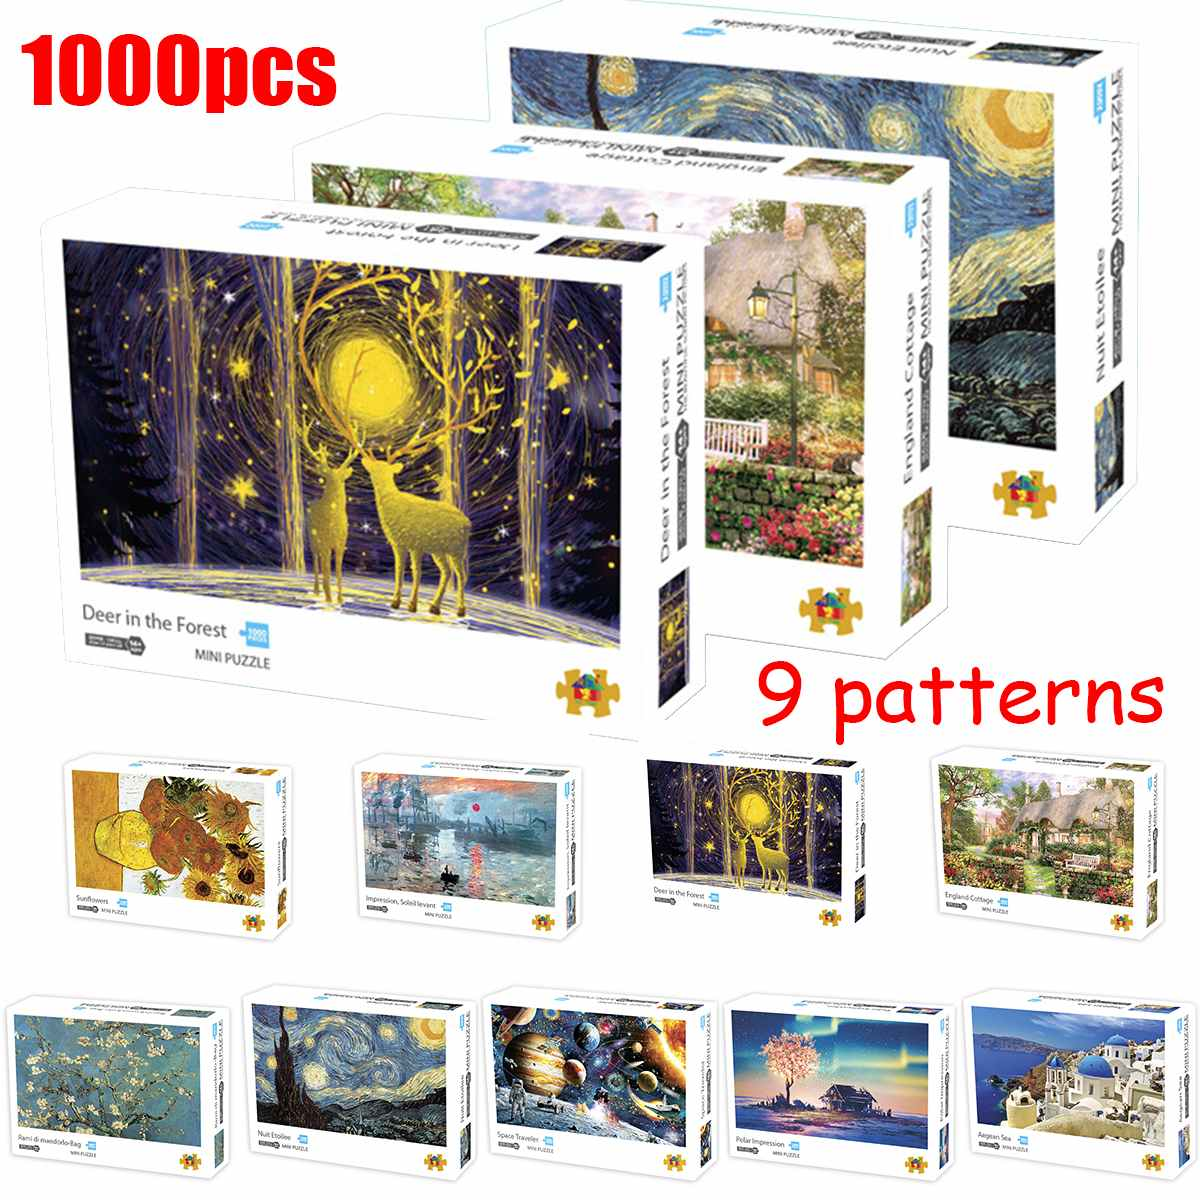 US $8.58 20% OFF|Jigsaw Puzzles Landscape Picture 1000 Pieces Mini Jigsaw Puzzle Toy for Adults Children Kids Educational Games Toys Pretty Gift|Puzzles| |  - AliExpress